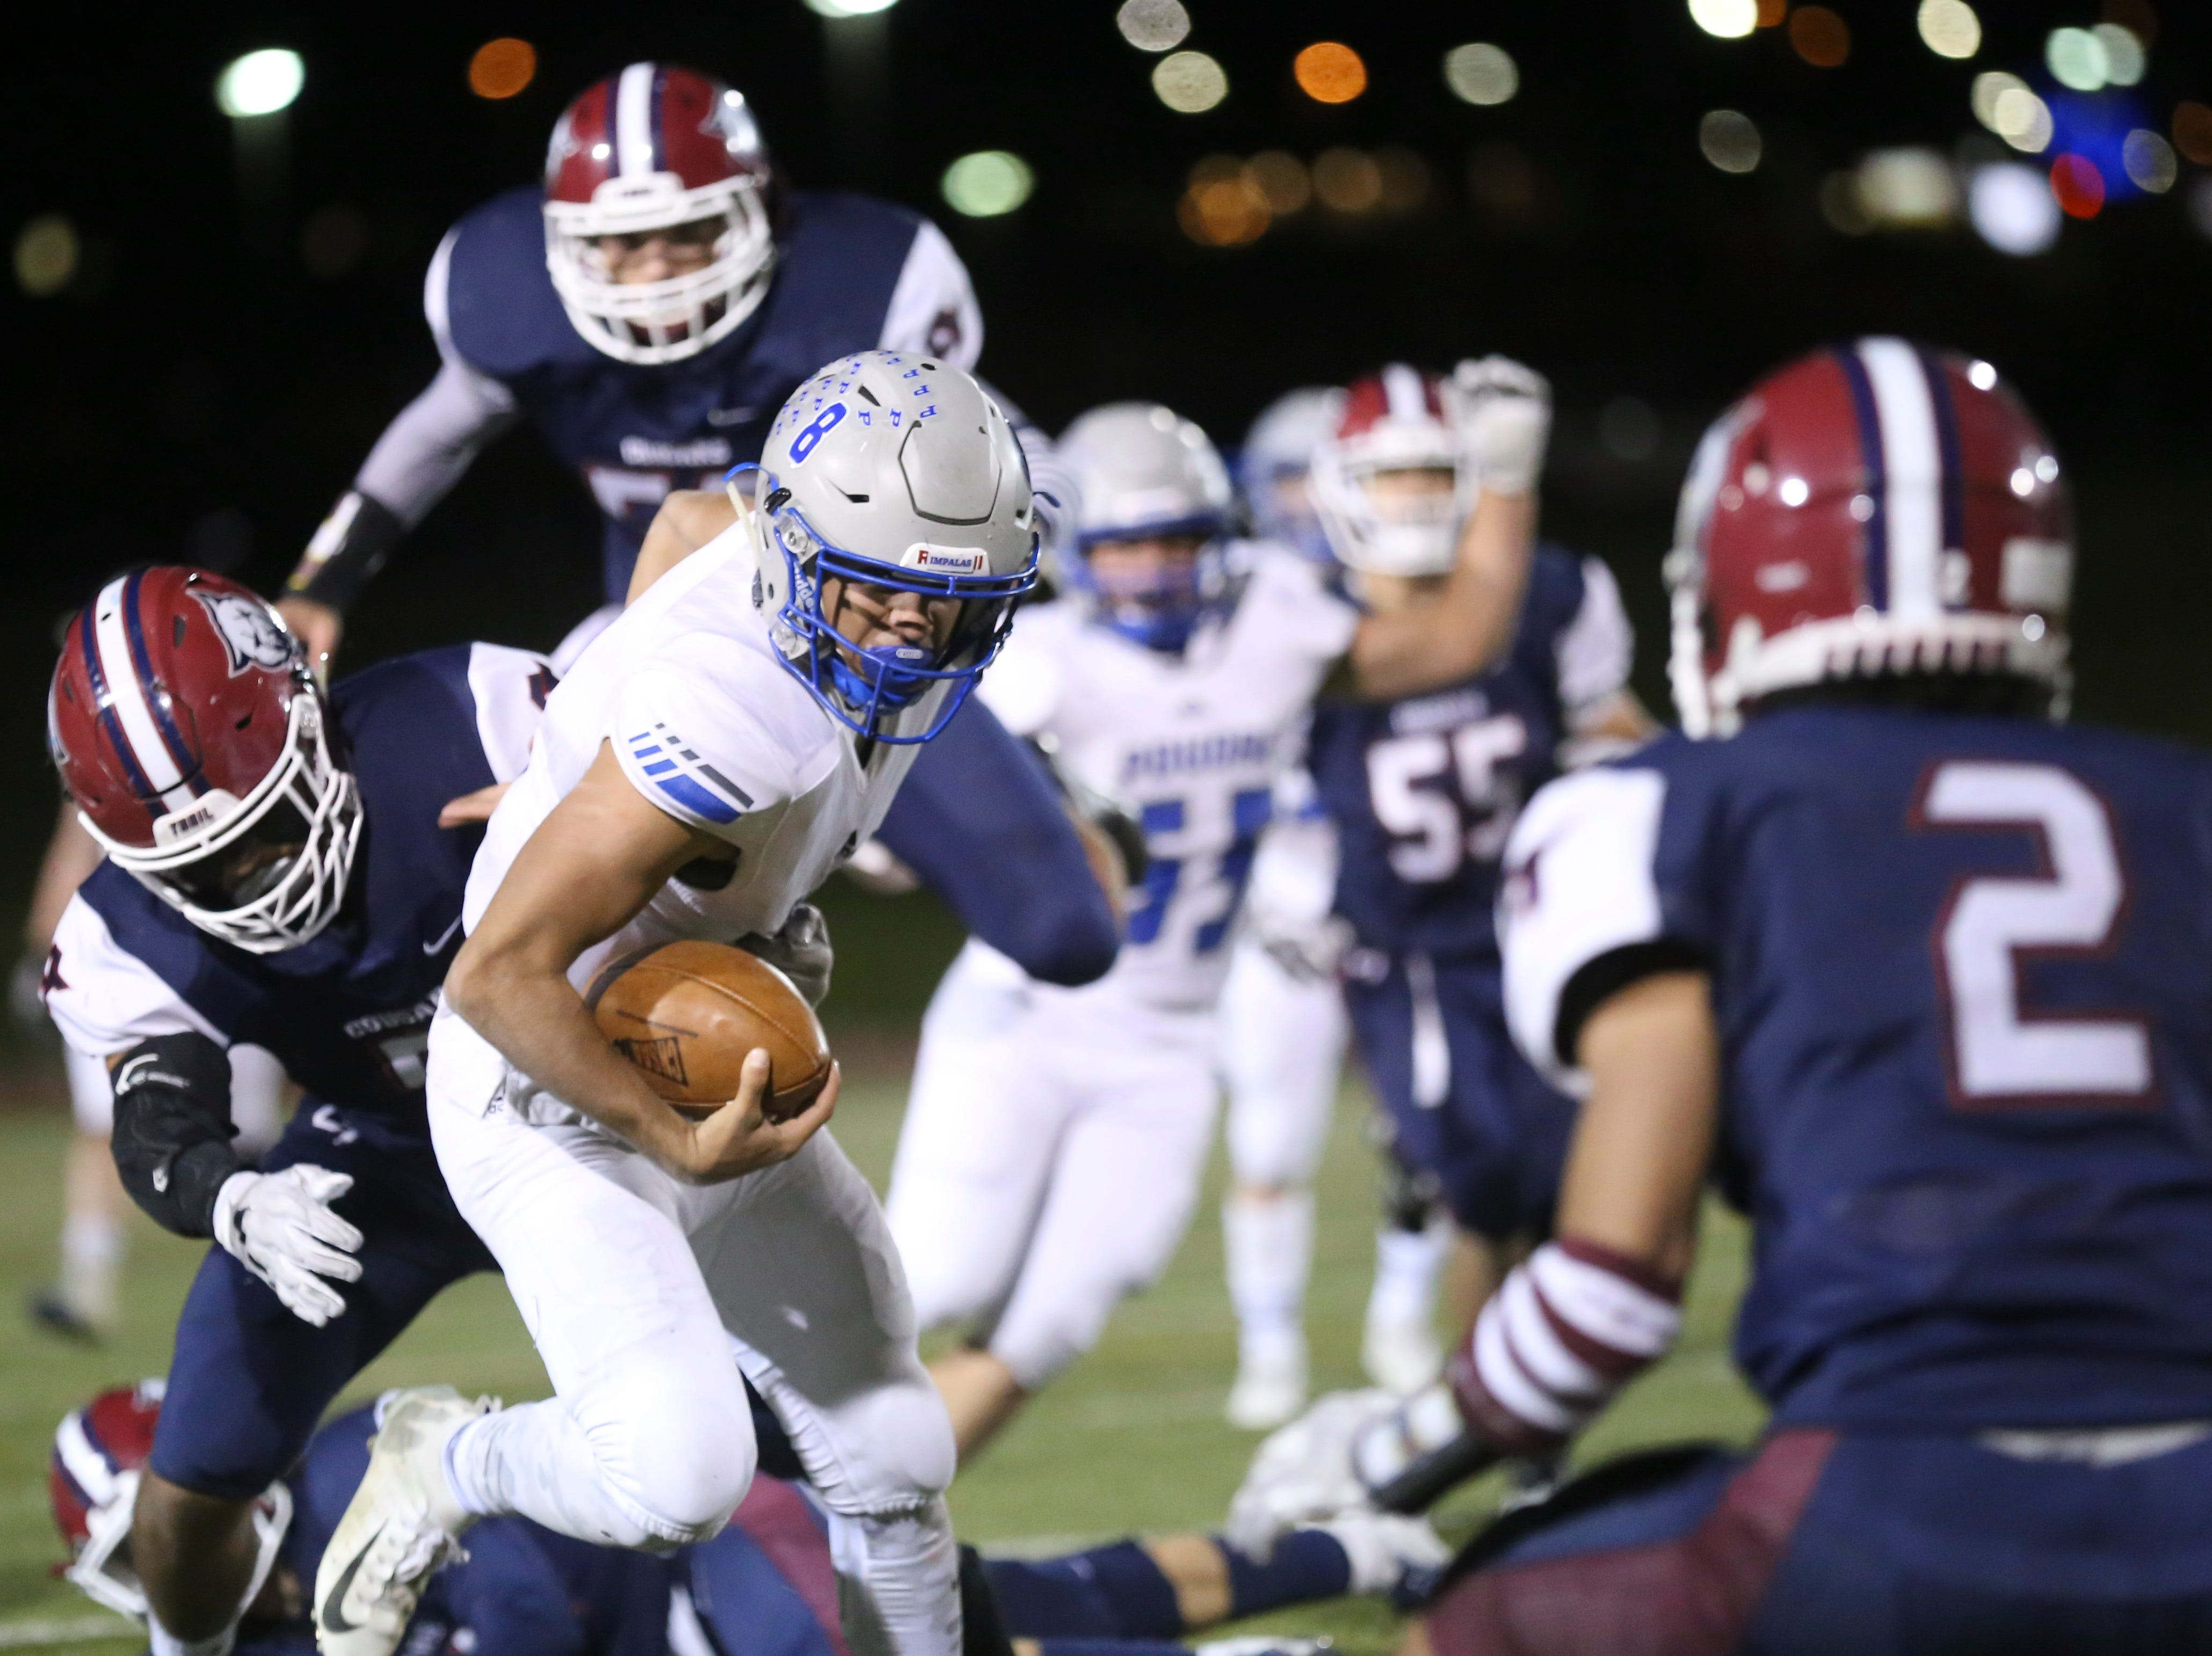 Poudre High School's Sergio Tarango runs the ball against Cherokee Trail High School during his opening round playoff game in Aurora.